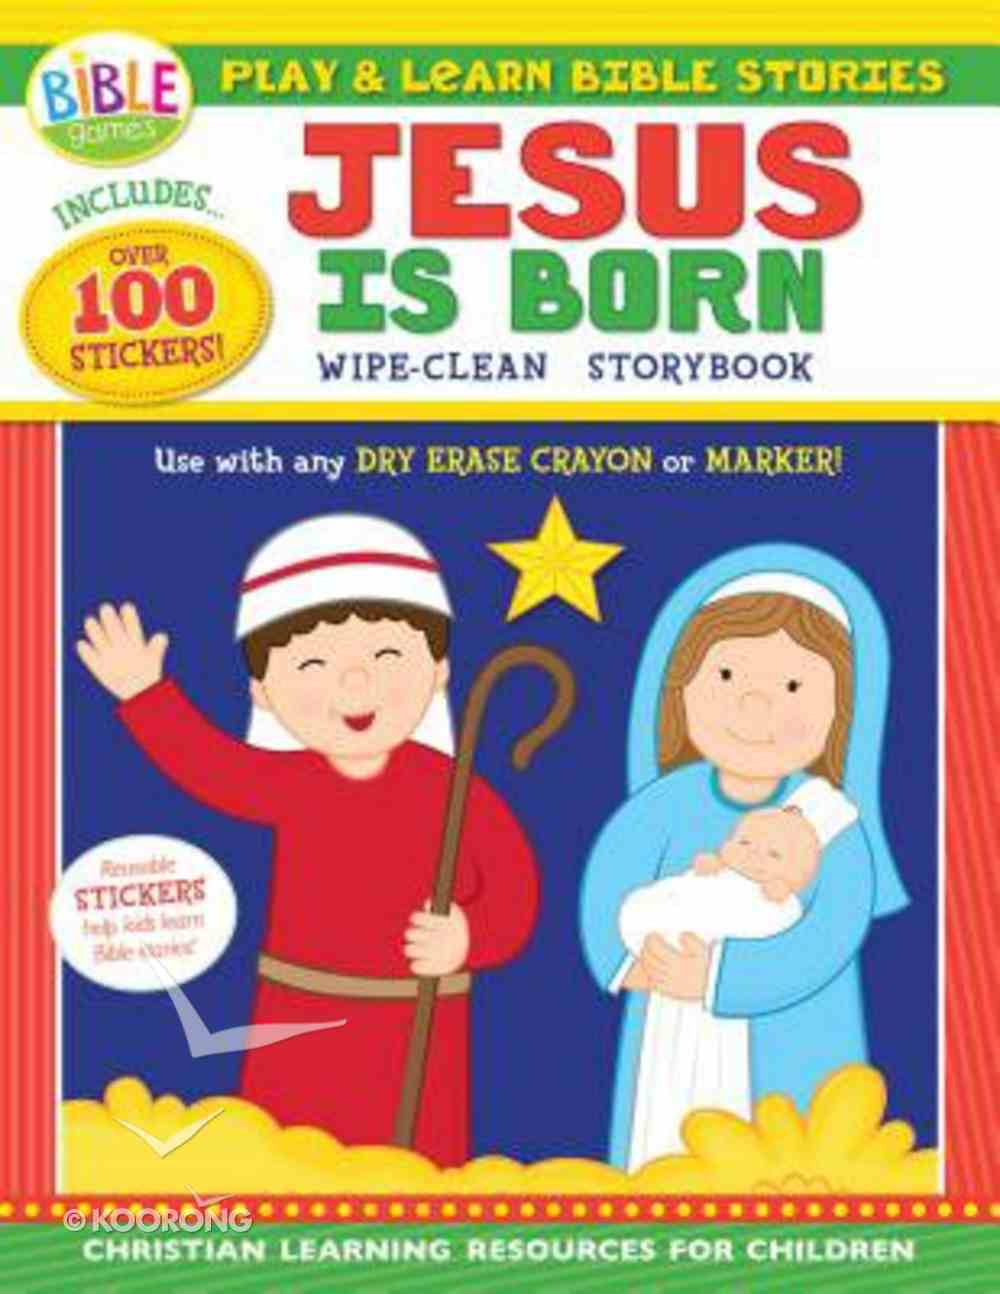 Wipe Clean Storybook: Play and Learn Bible Stories - Jesus is Born Paperback